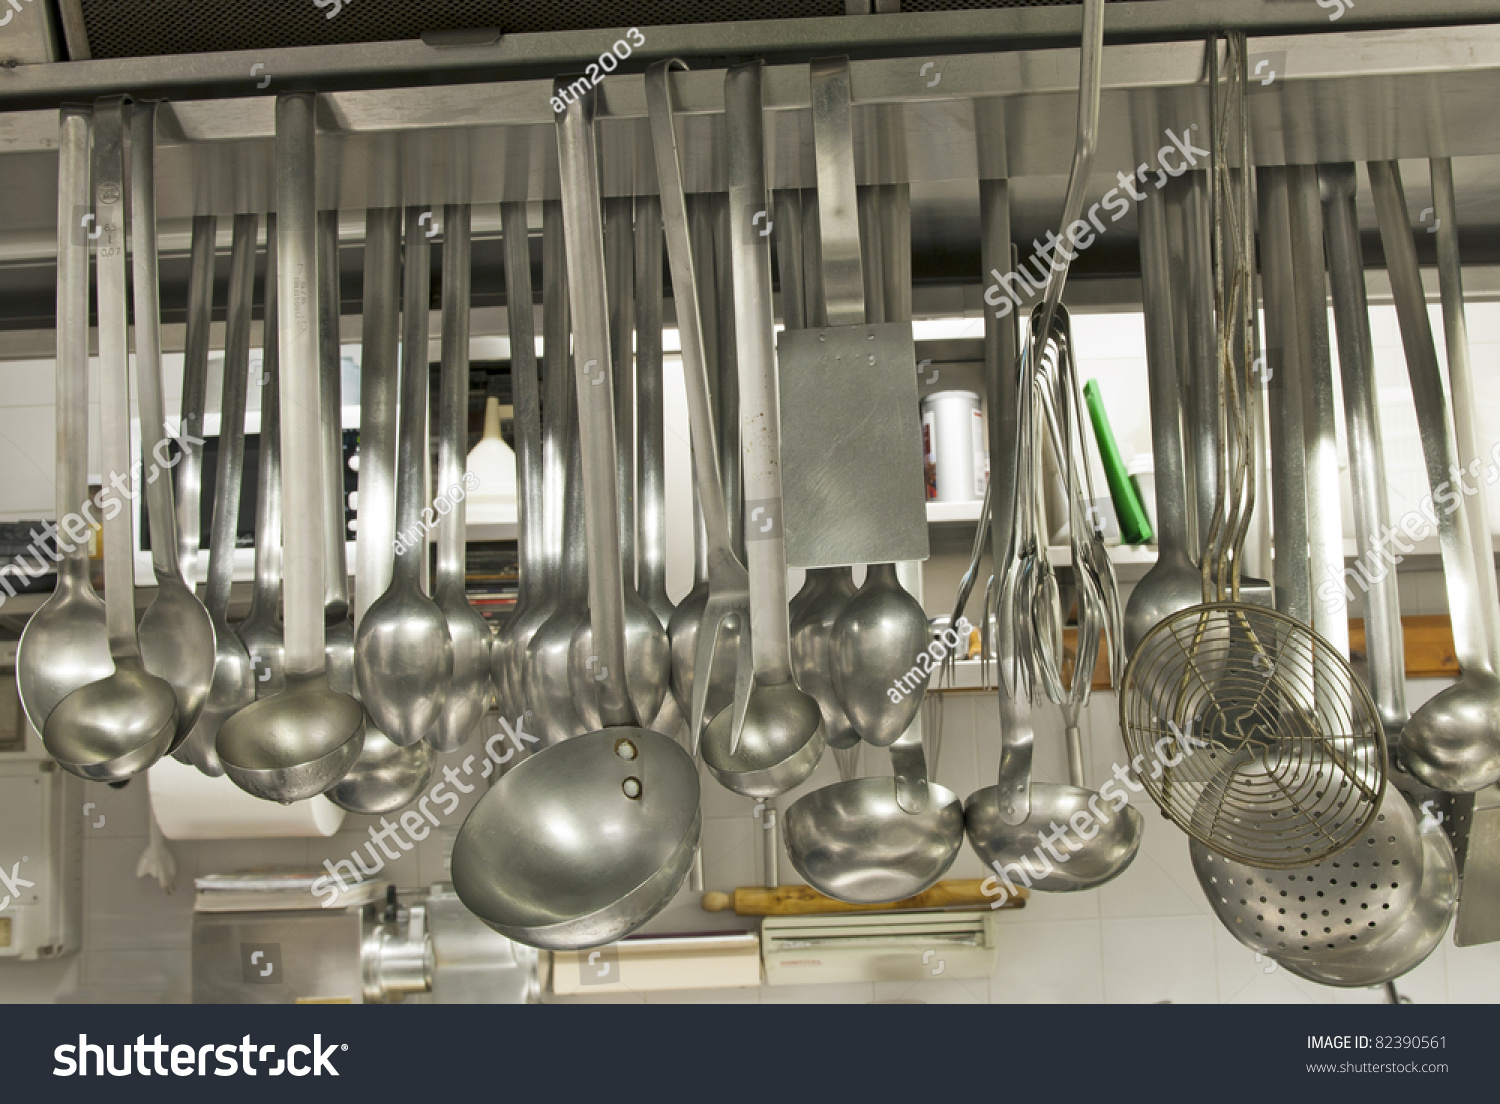 Kitchen Utensils Starting With Z On Infos Ell And Level